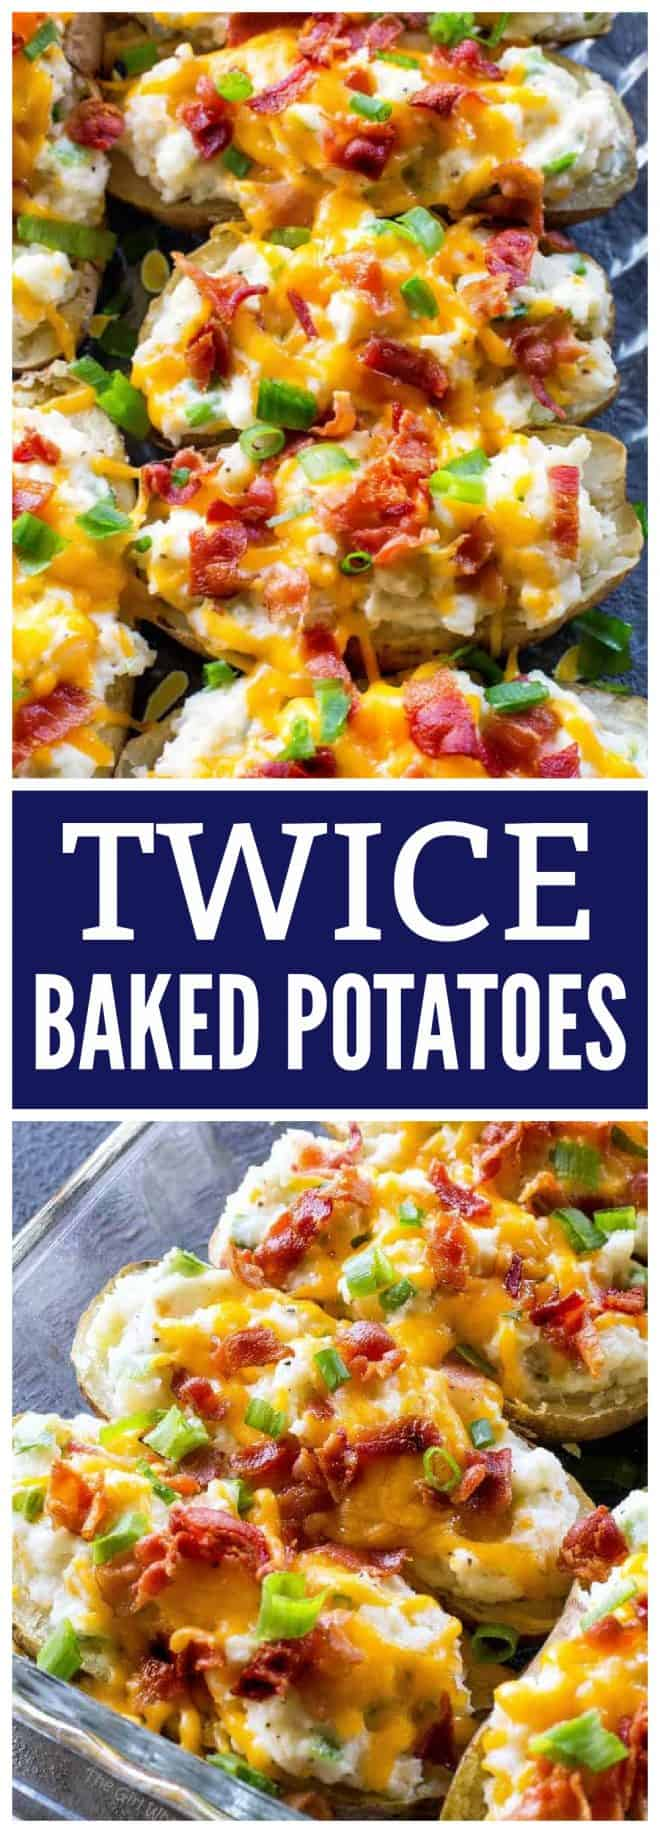 The Ultimate Twice Baked Potatoes - you can go wrong with this side dish. Twice Baked Potatoes are creamy with sour cream and topped with bacon, cheese, green onions. #twice #baked #potatoes #recipe #BBQ #potluck #sidedish